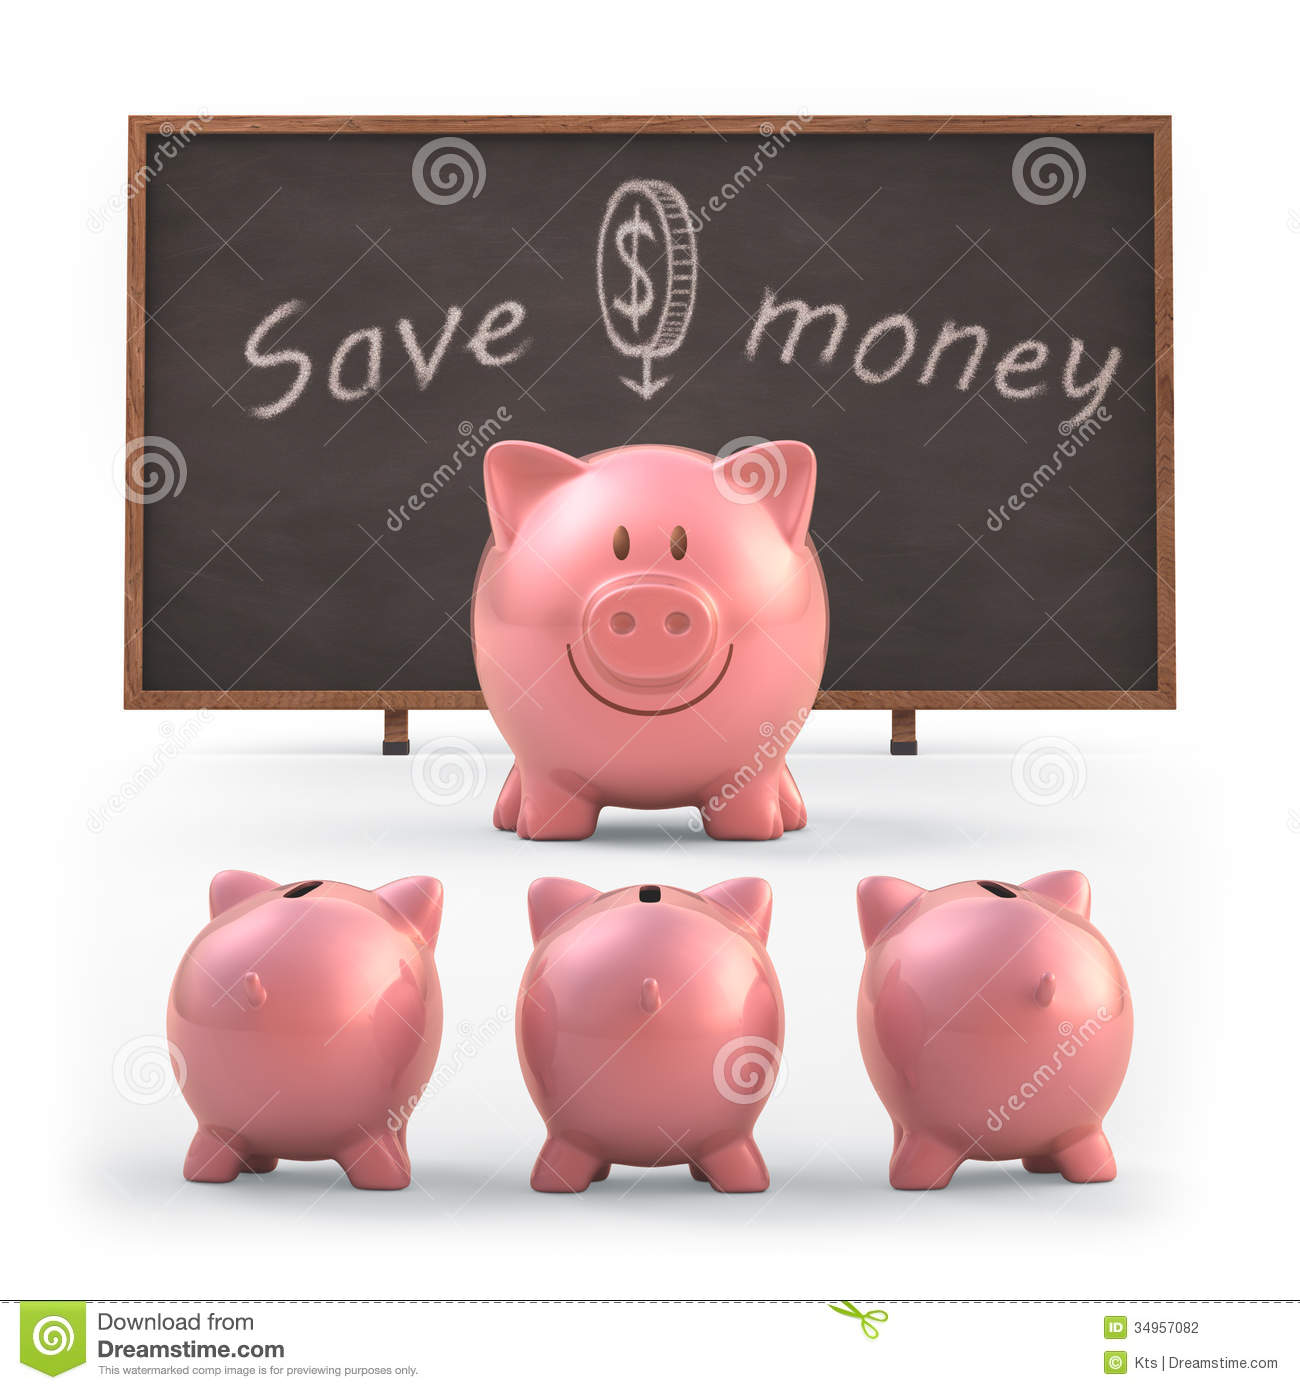 money bank and funds When depositing money into a bank account, one expects to have convenient and easy access to the funds there are times, however, when this is not the case in certain.